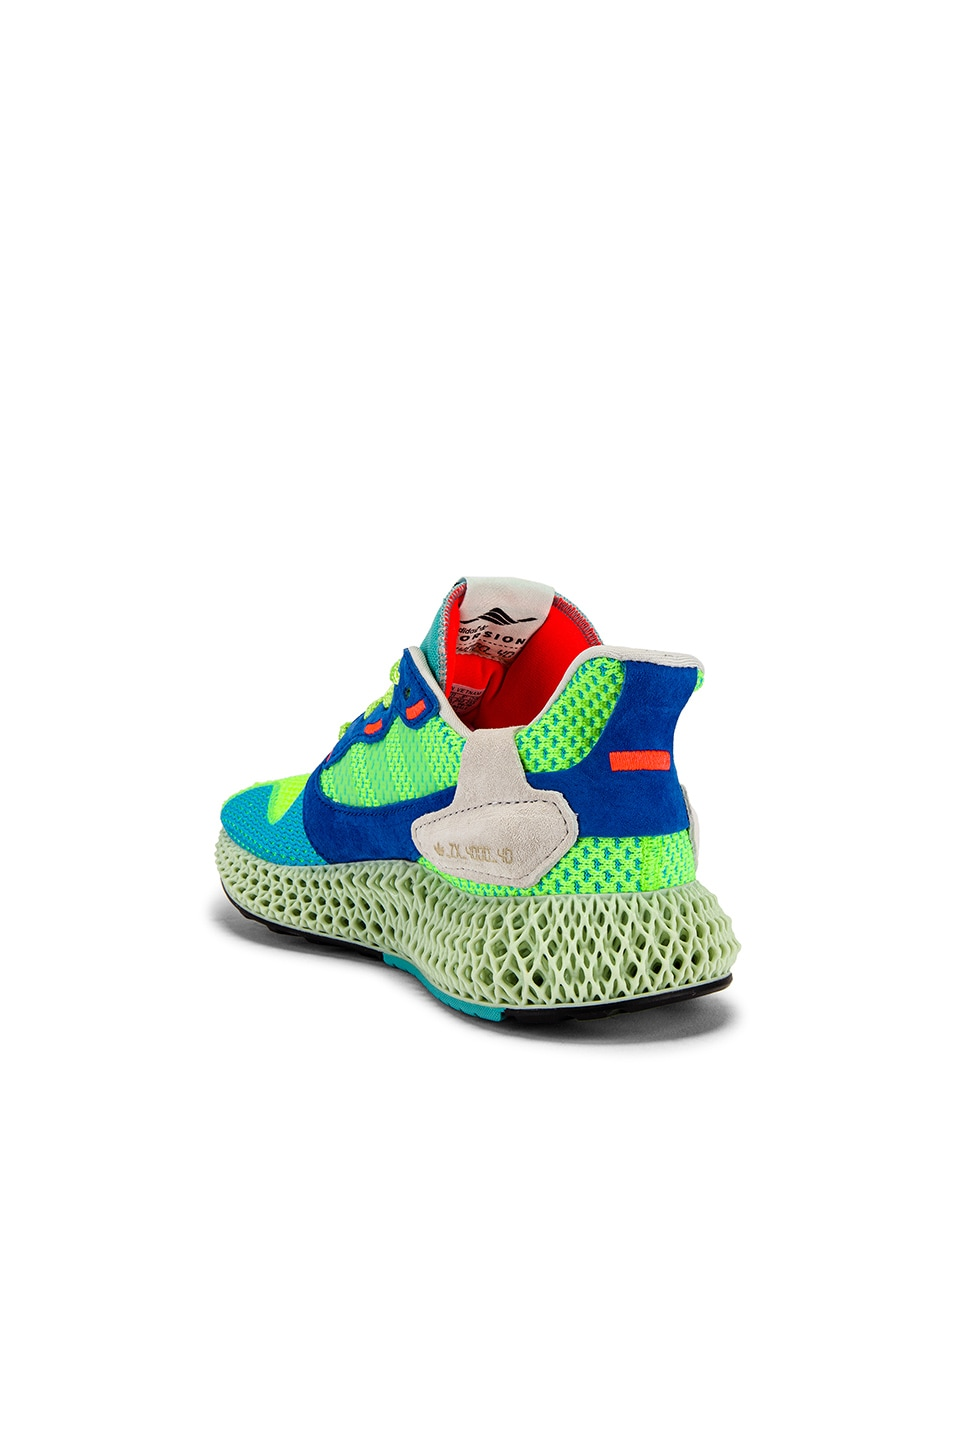 Image 3 of adidas Originals ZX4000 4D Sneaker in